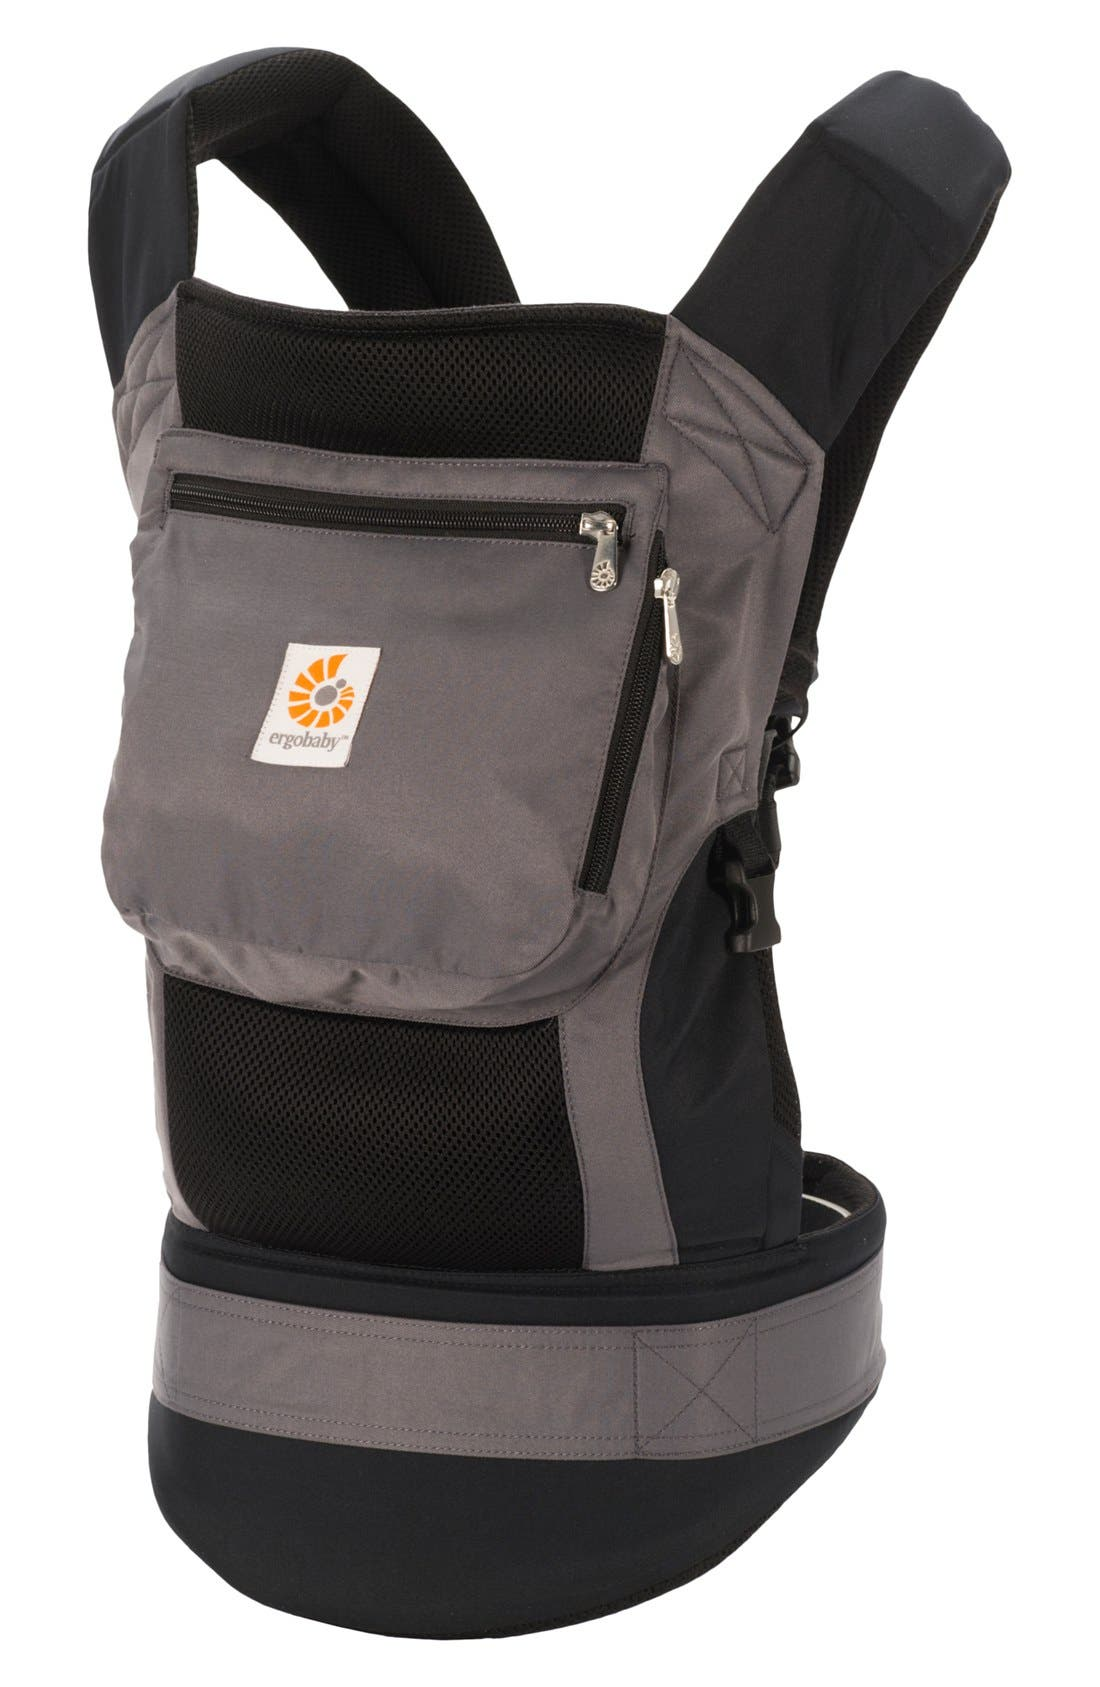 'Performance' Baby Carrier,                             Main thumbnail 1, color,                             001